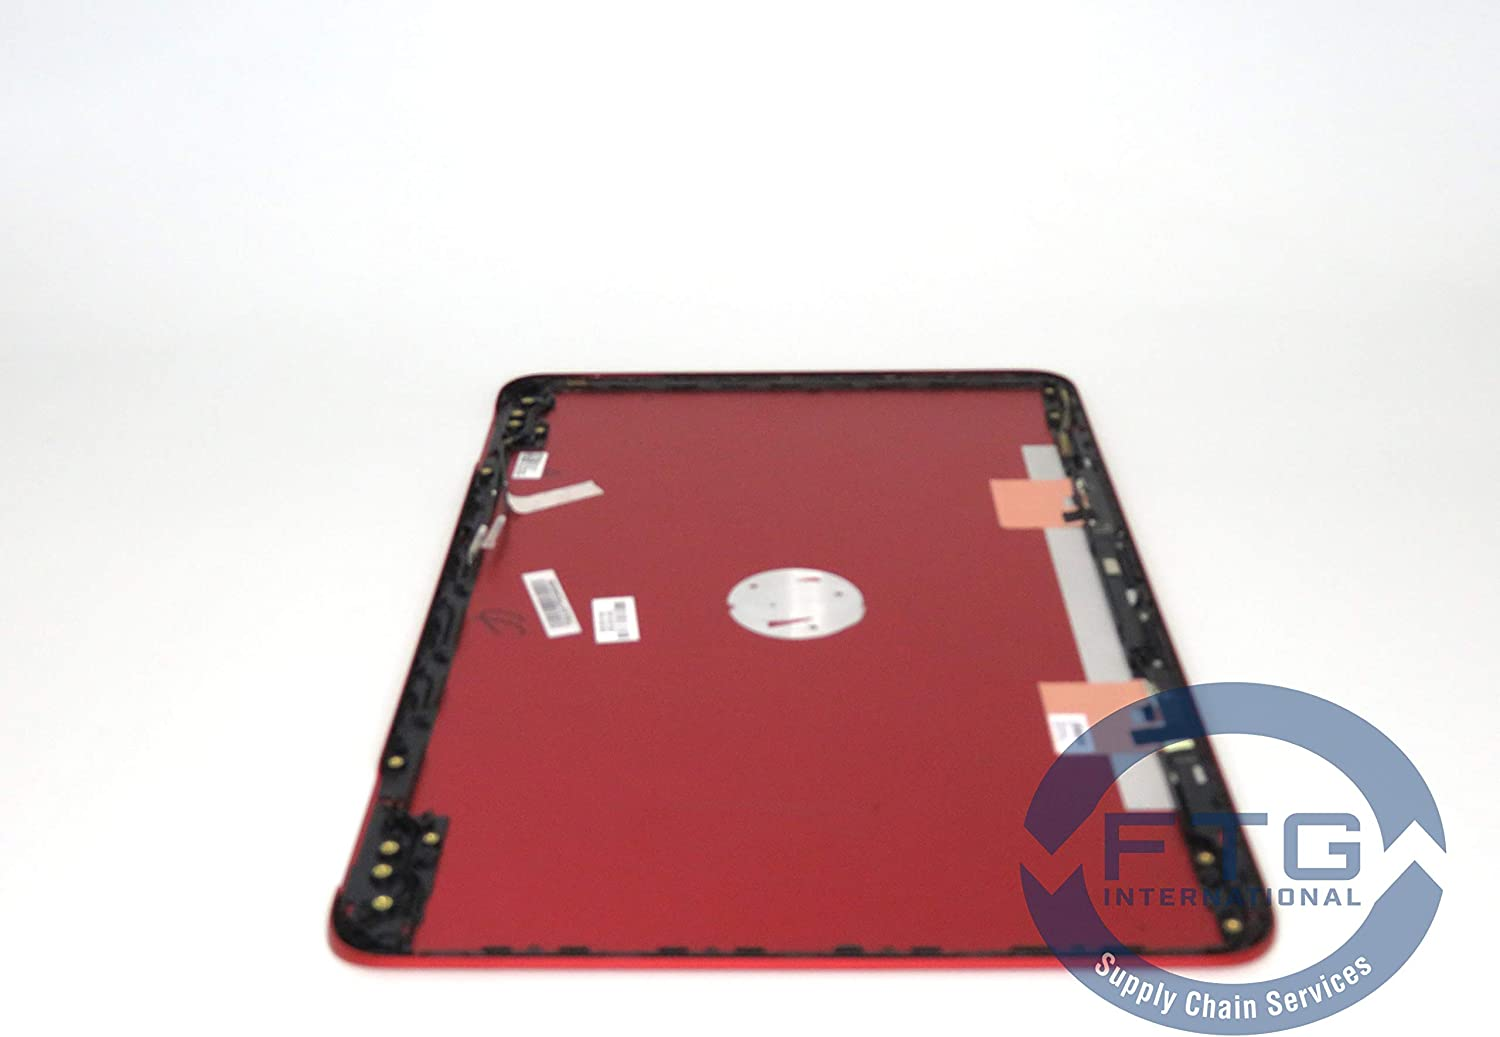 856195-001 Back Cover LCD CDR FLAN 1.0